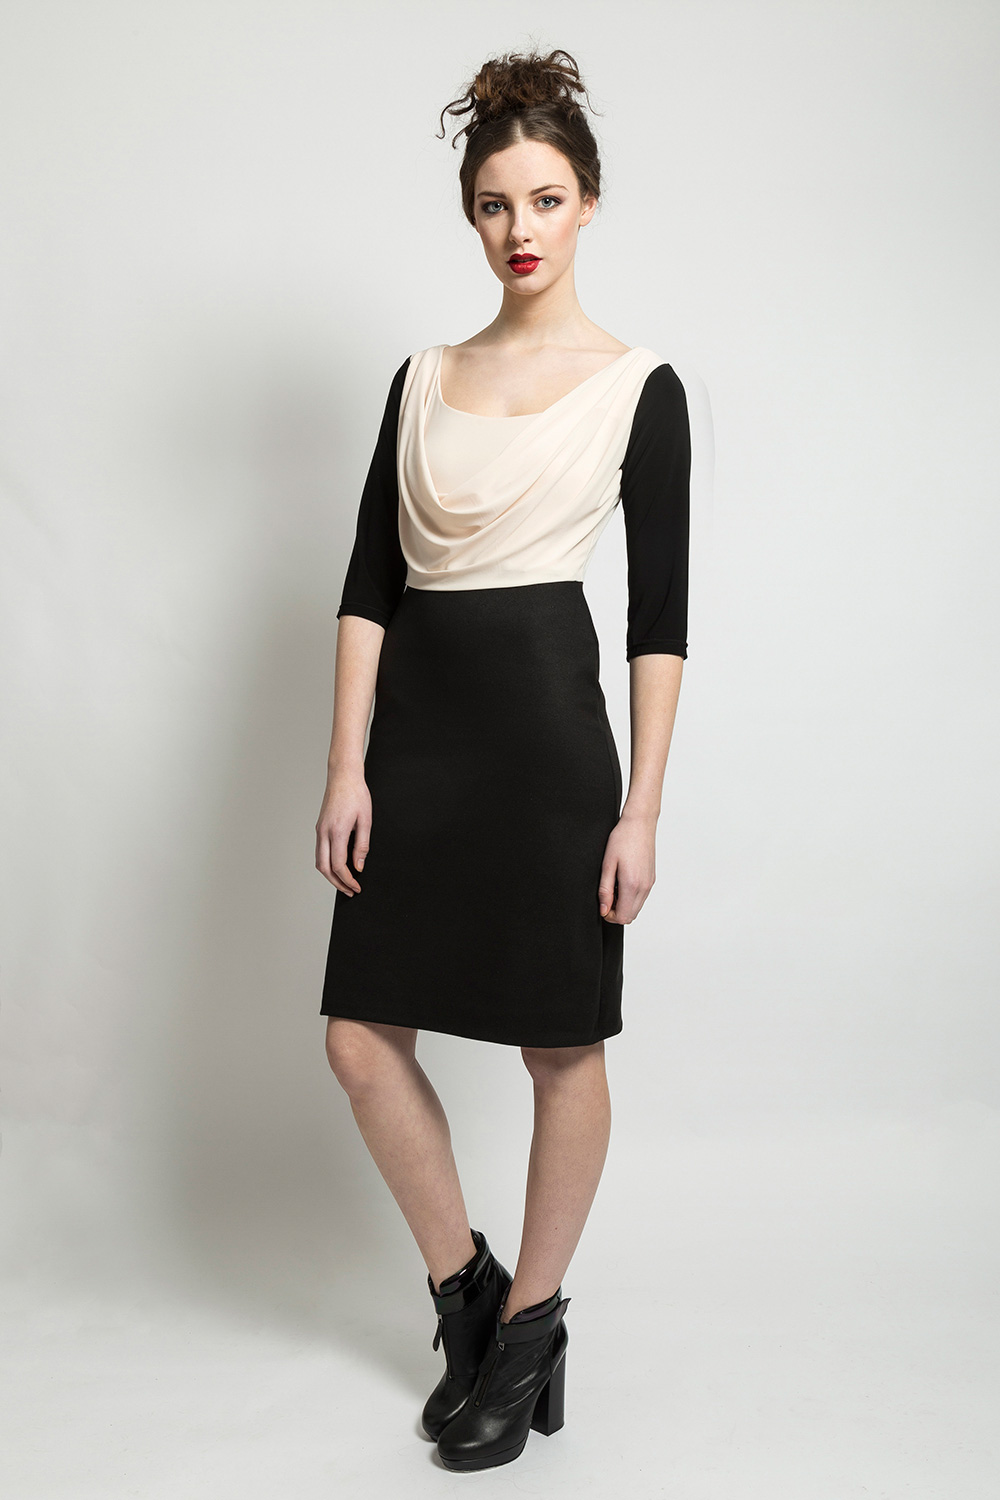 AW14-Cream-and-Black-Cowl-Dress.jpg